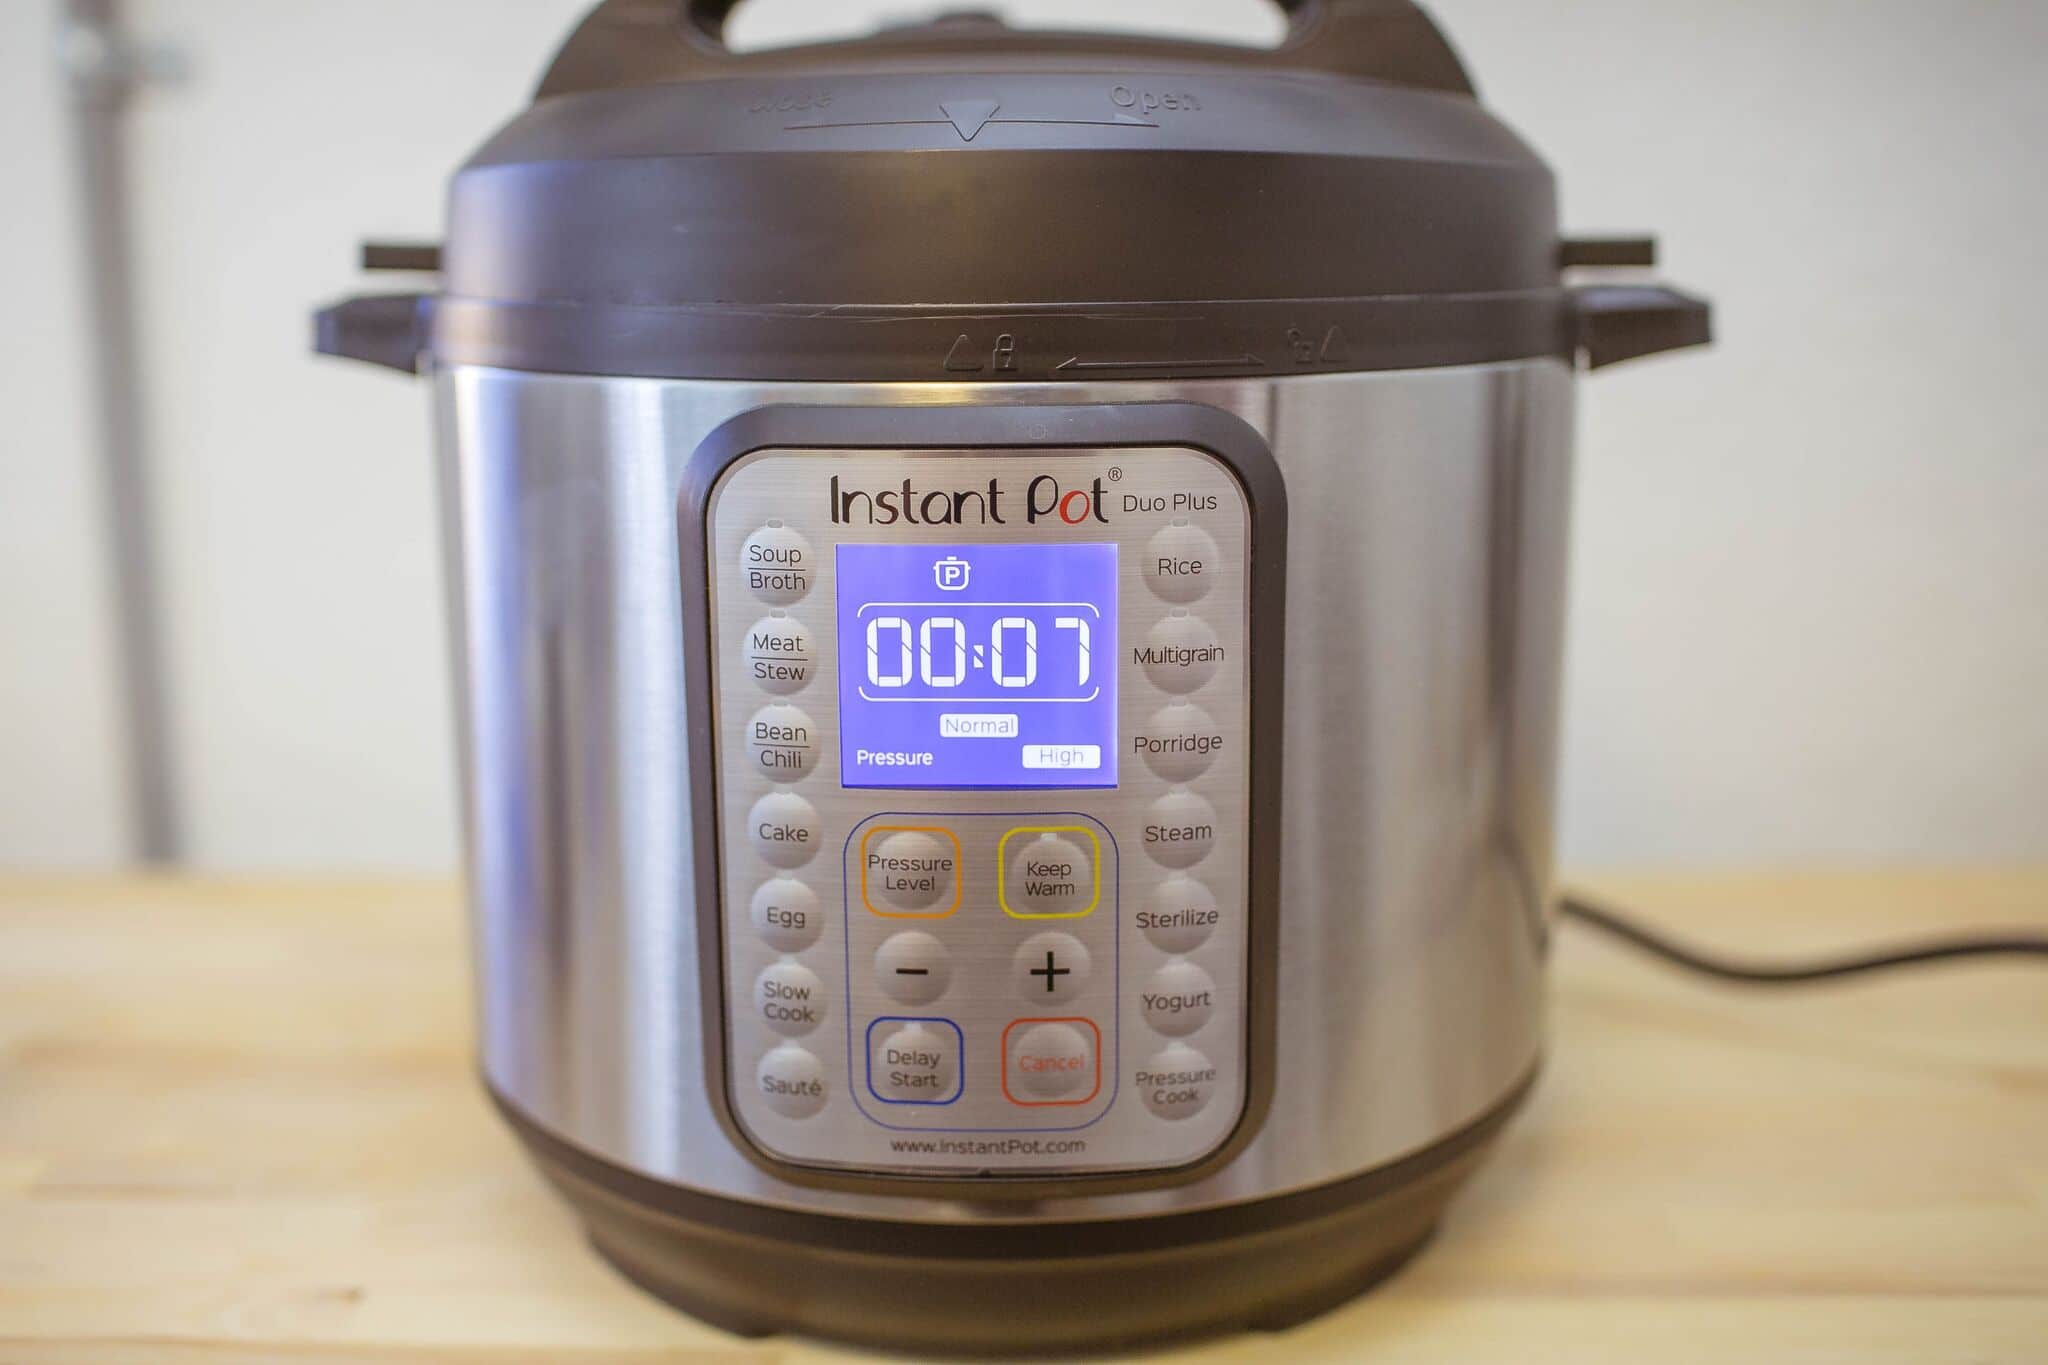 The Instant Pot is changing the way we cook! Here is everything you need to know about the new kitchen wonder tool.